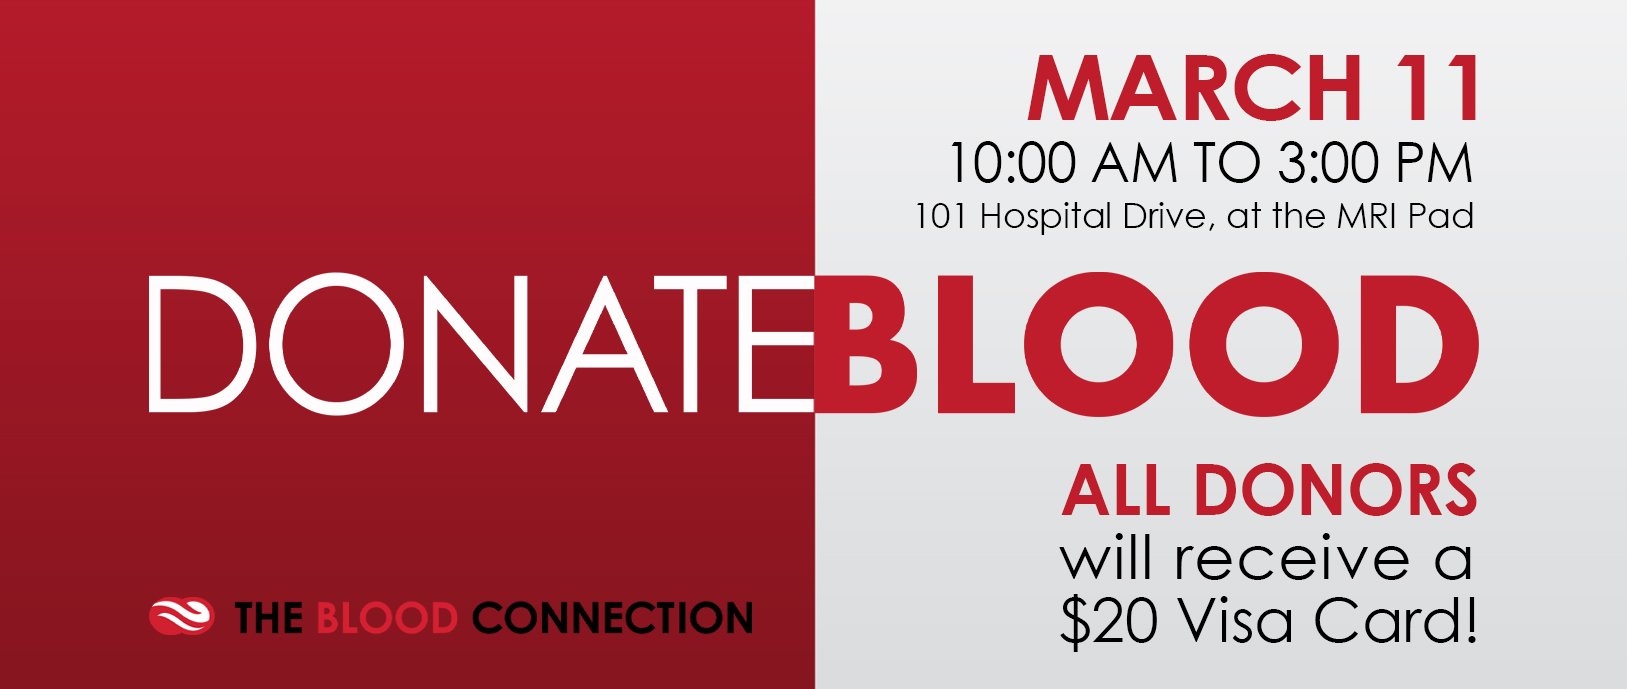 Giving back to the community is in our blood. It's the same for St. Luke's Hospital too. Your donation is greatly appreciated.